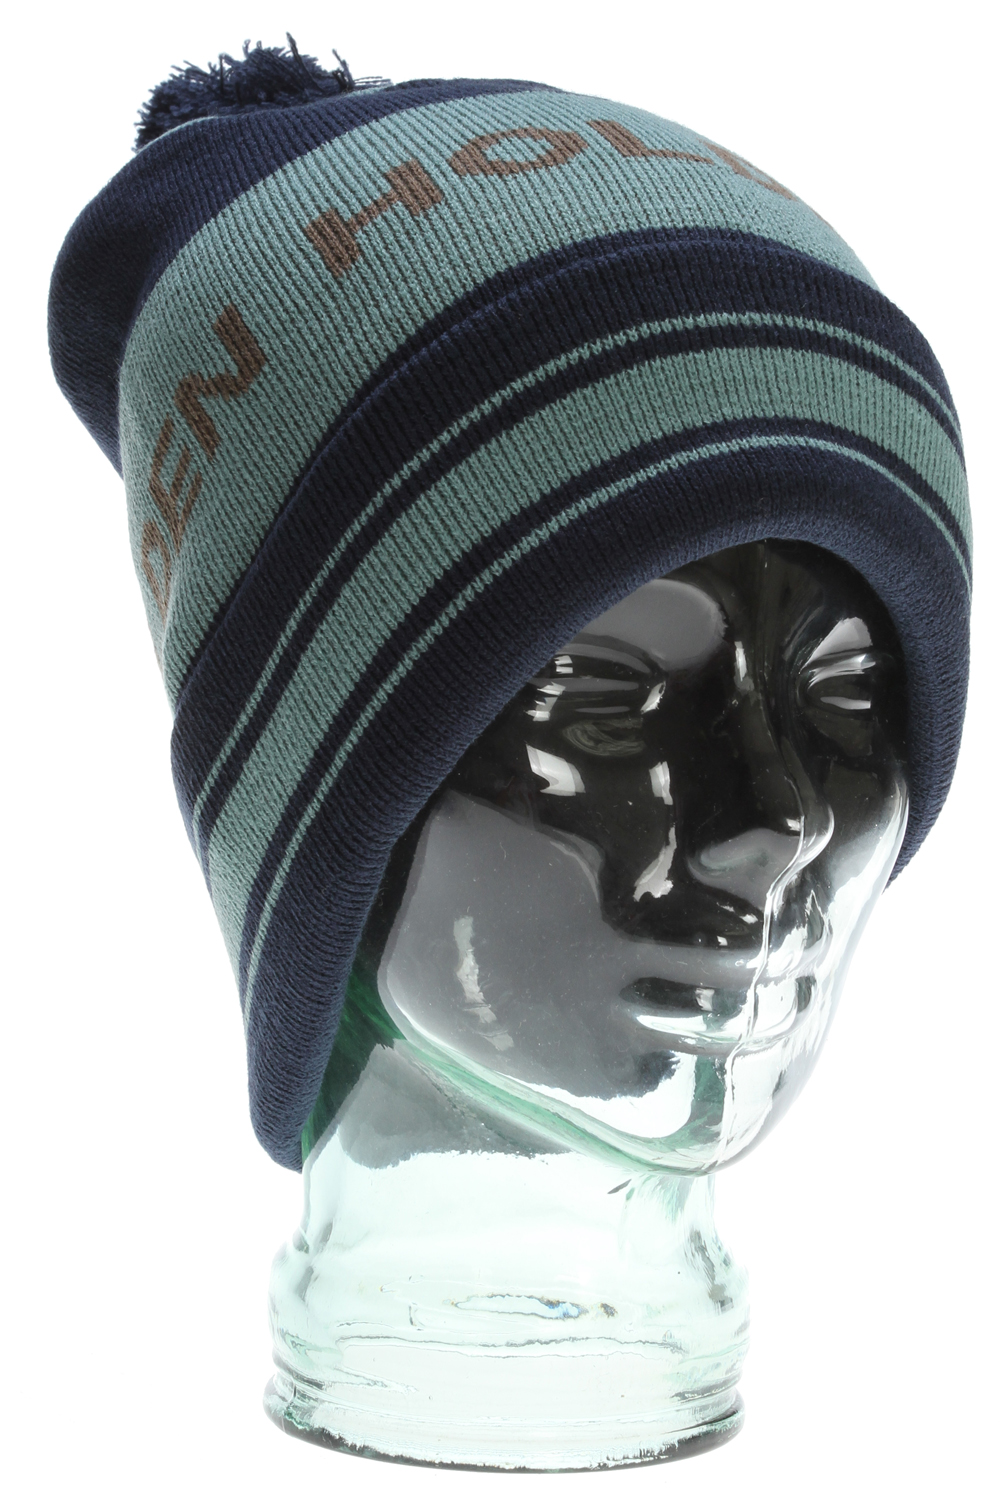 Snowboard Mid-weight double layer jacquard knit with easy to remove pom. 100% Acrylic - $11.95